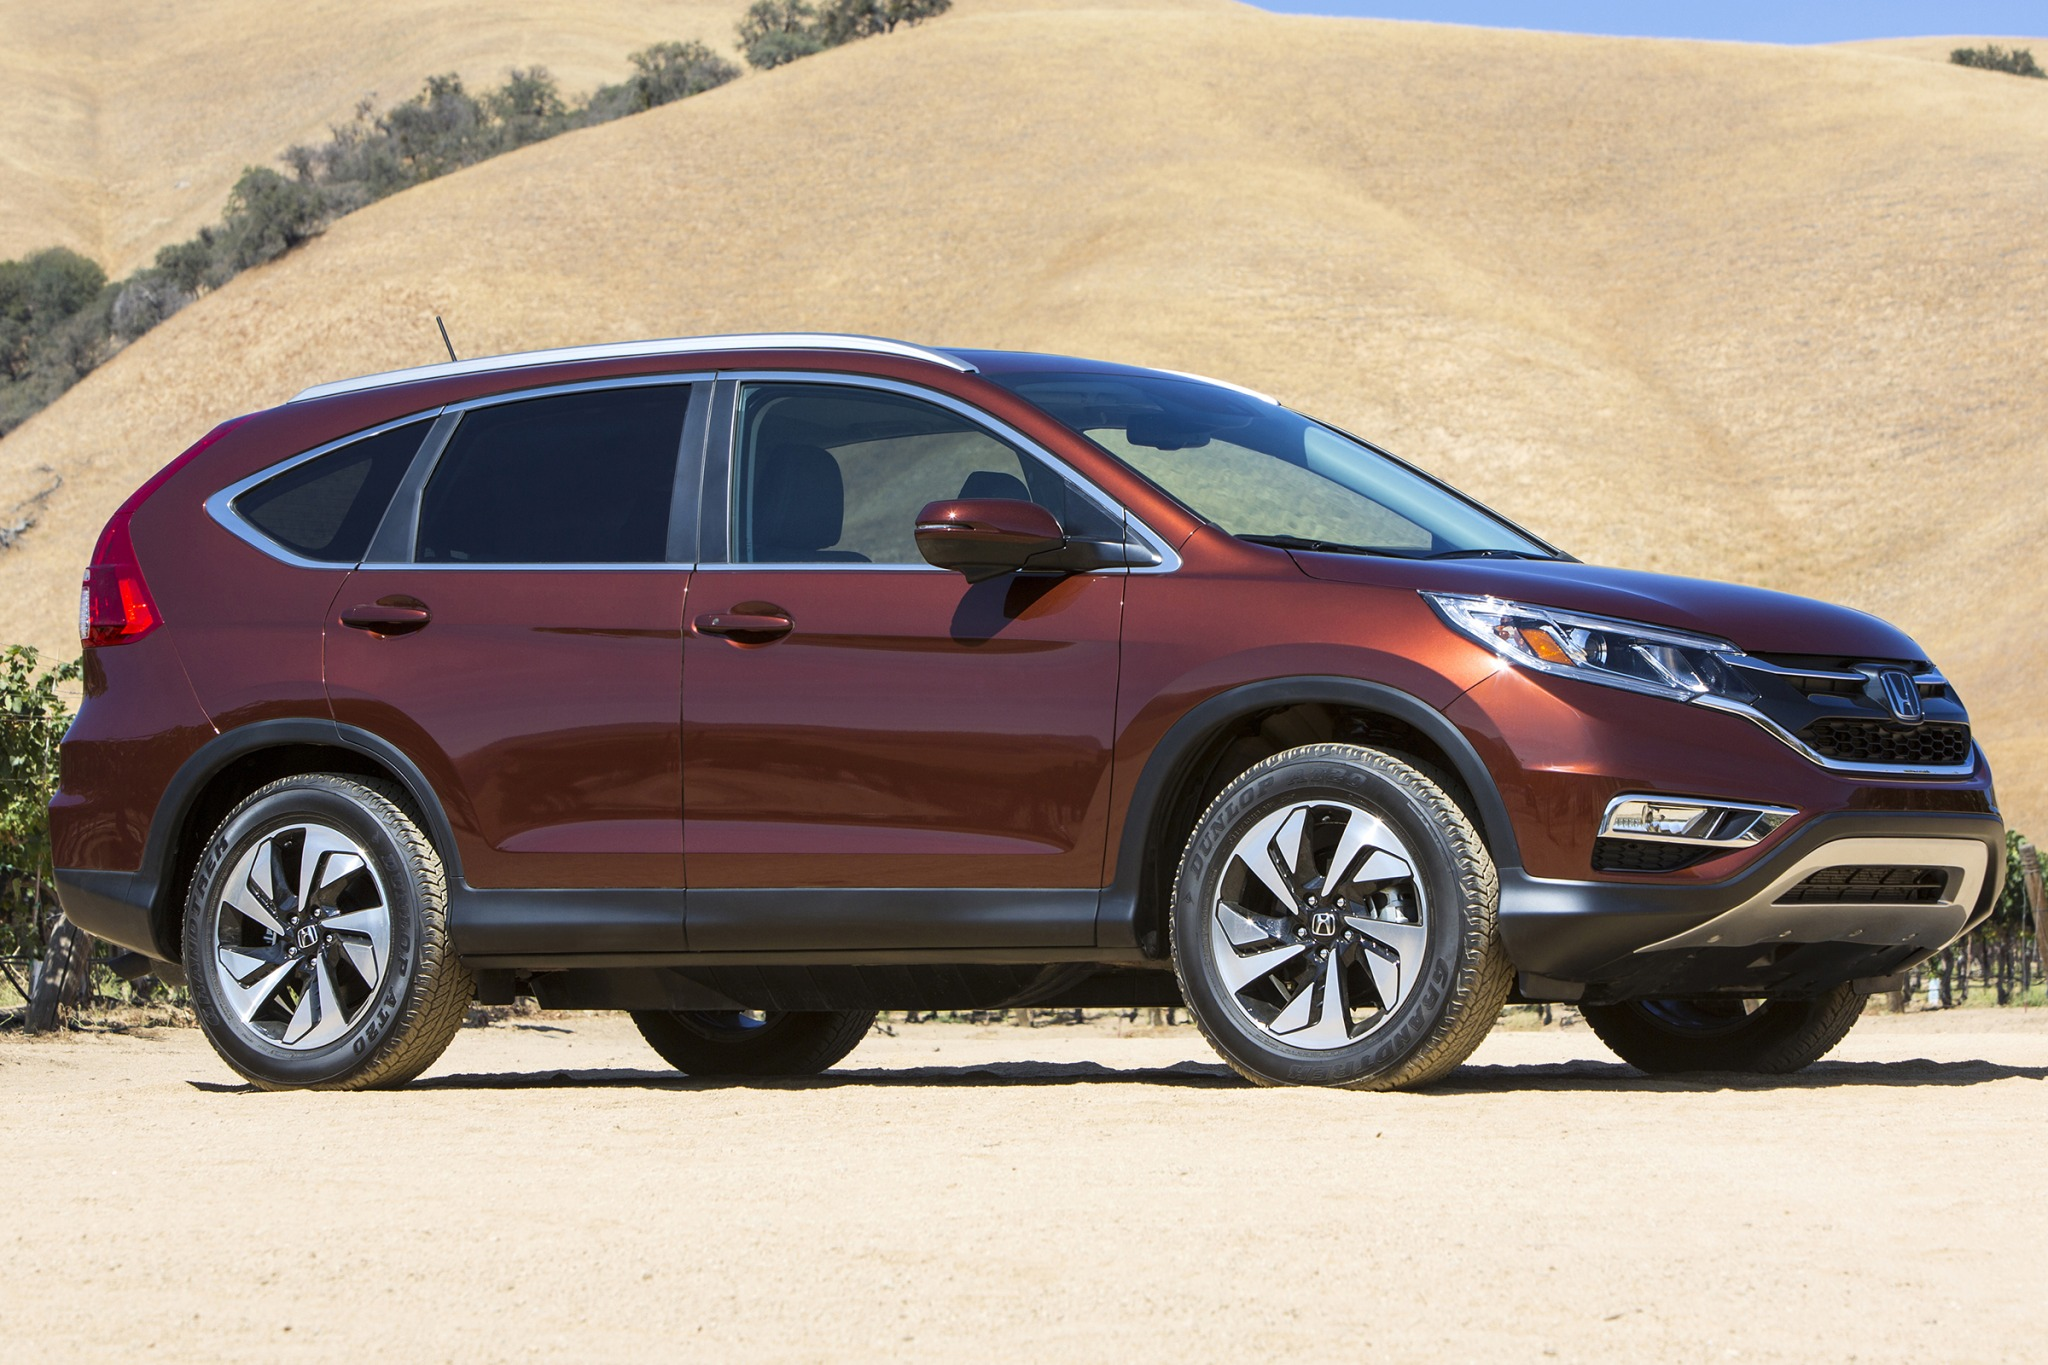 2016 Honda Cr-v Lx 2wd Vin Number Search